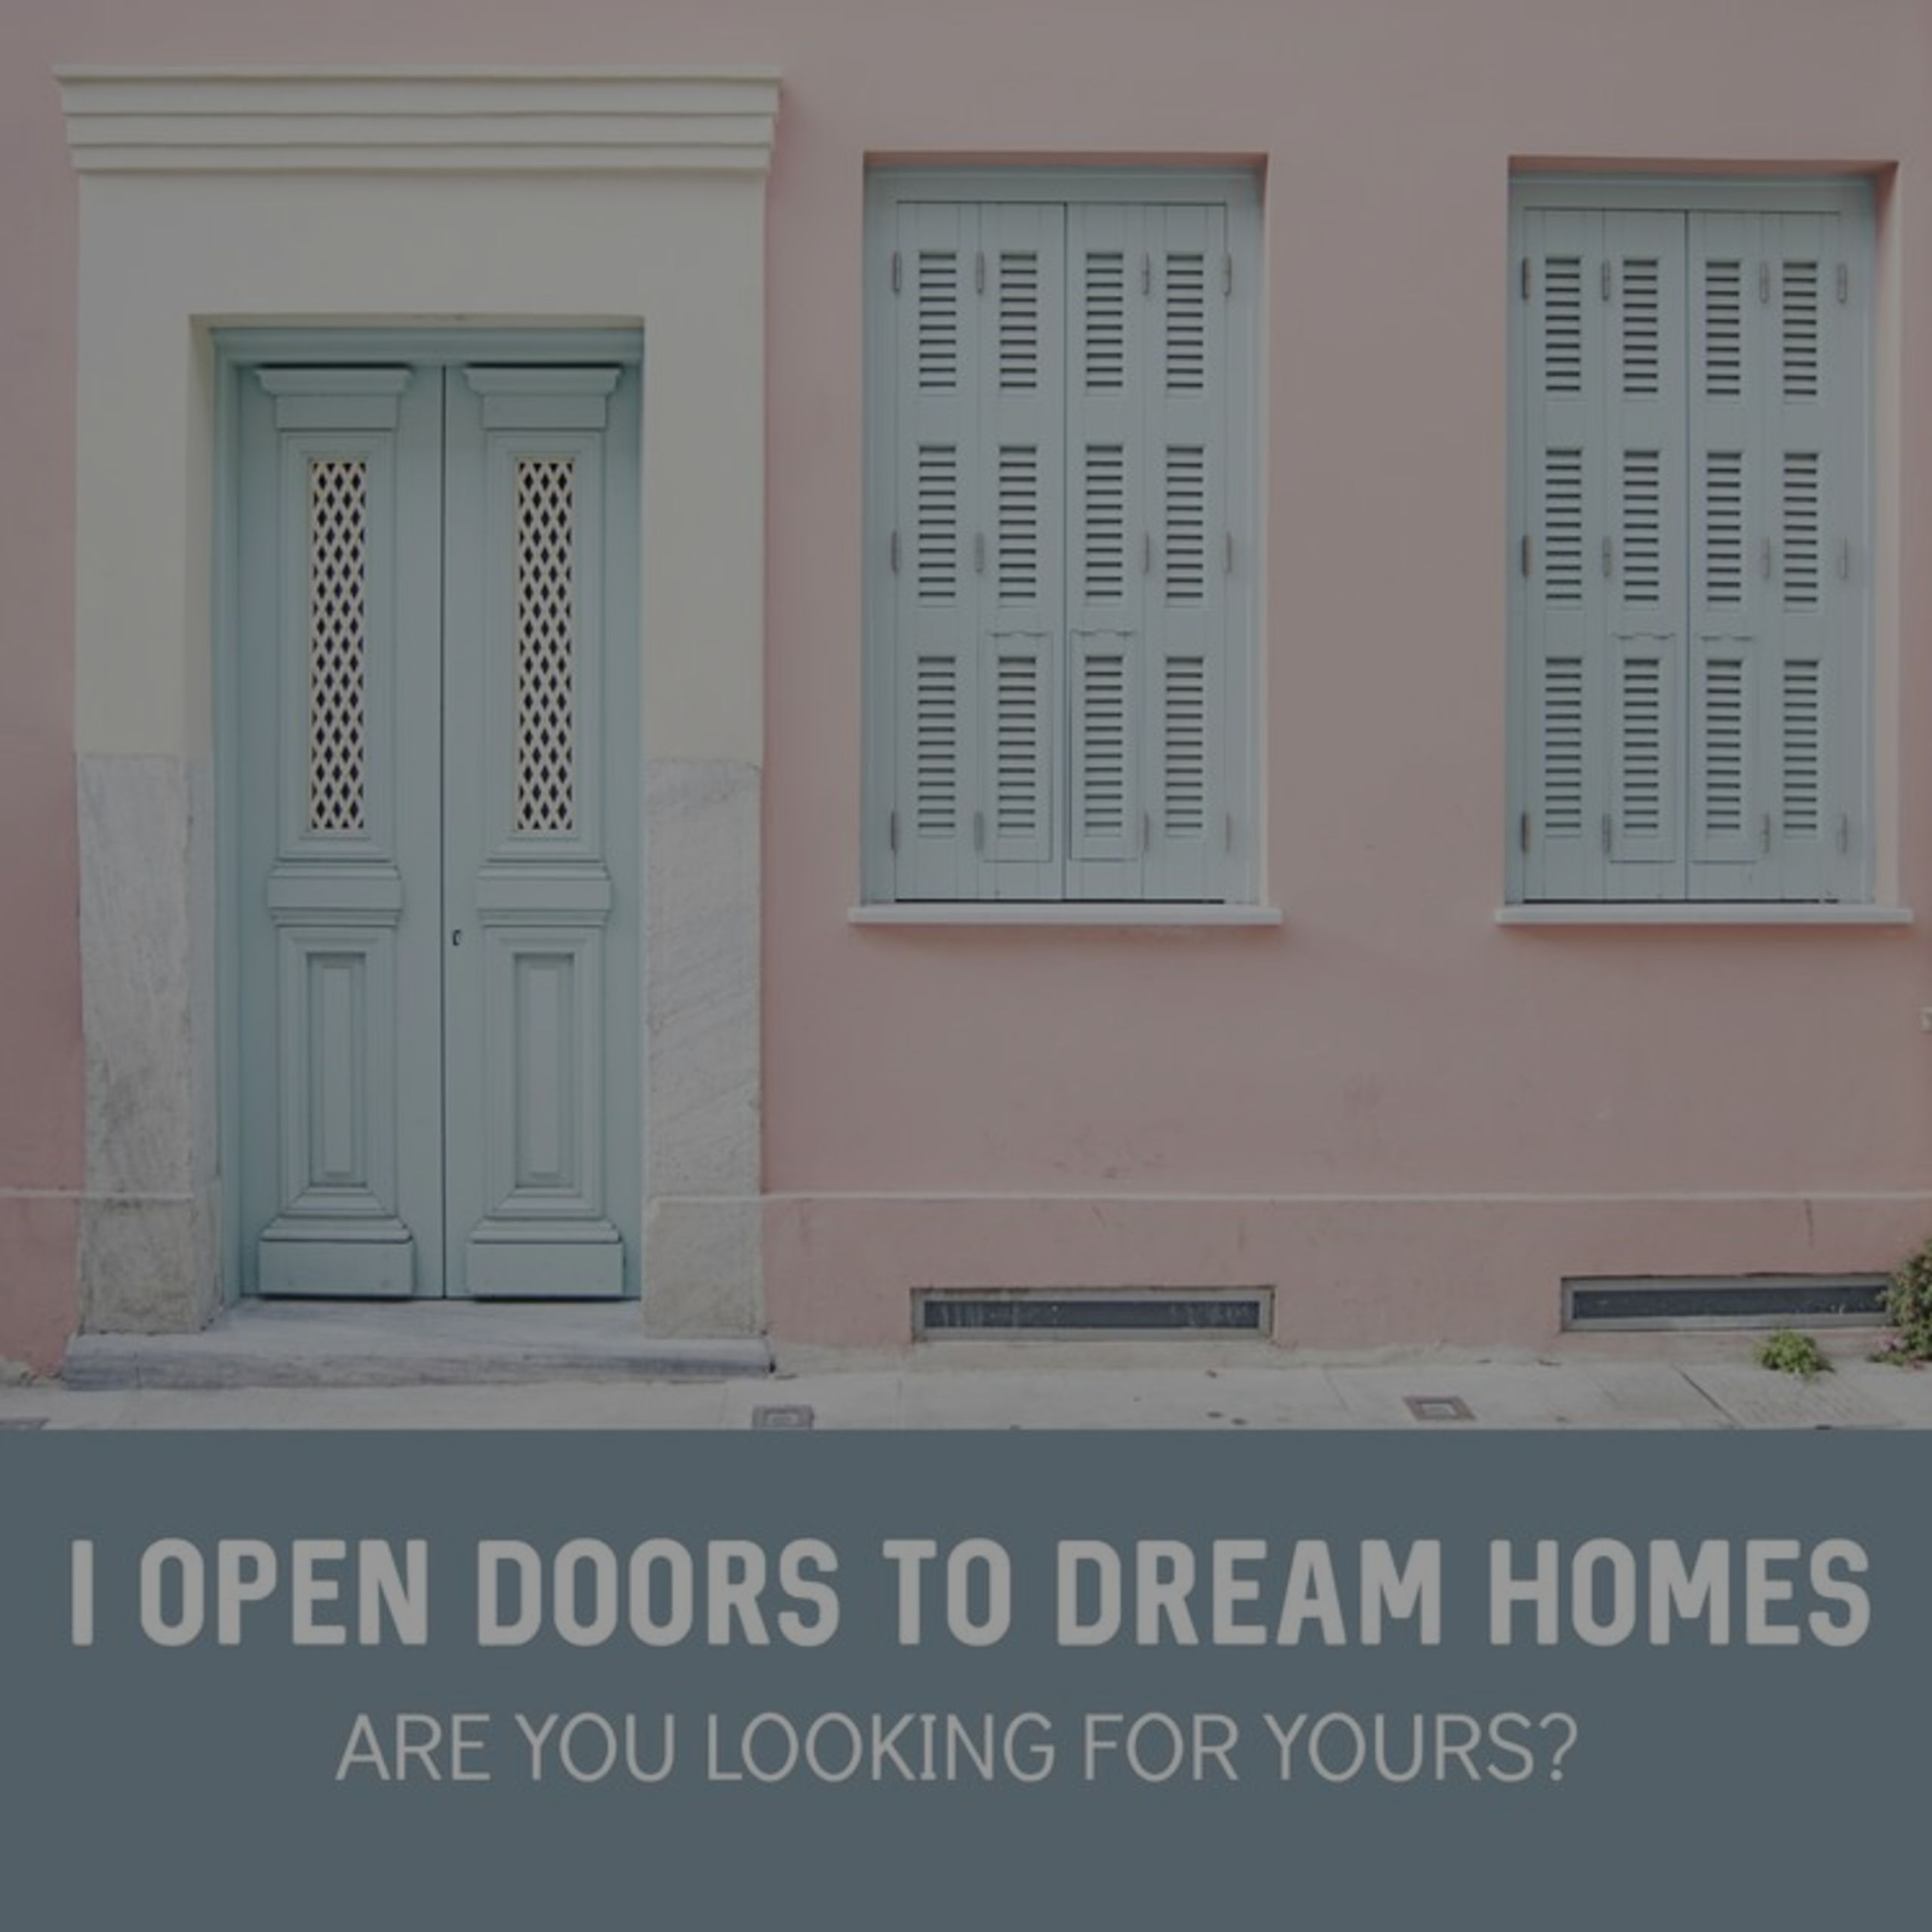 ARE YOU LOOKING FOR YOUR DREAM HOME?